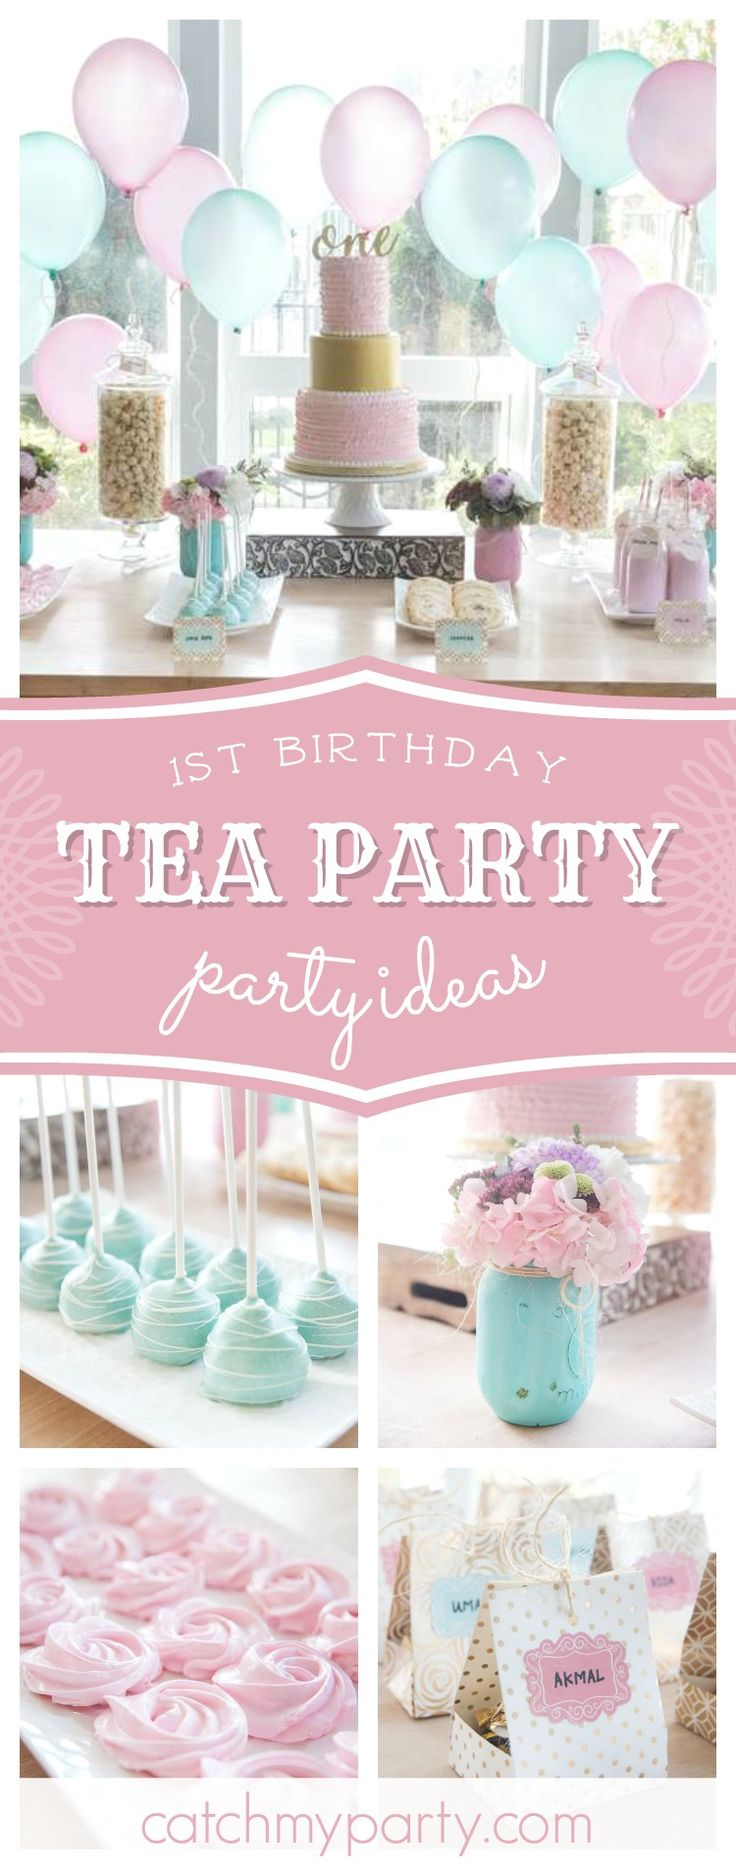 Don't miss this gorgeous pastel vintage 1st birthday tea party! The sweets are adorable!! See more party ideas and share yours at CatchMyParty.com #1stbirthday #teaparty